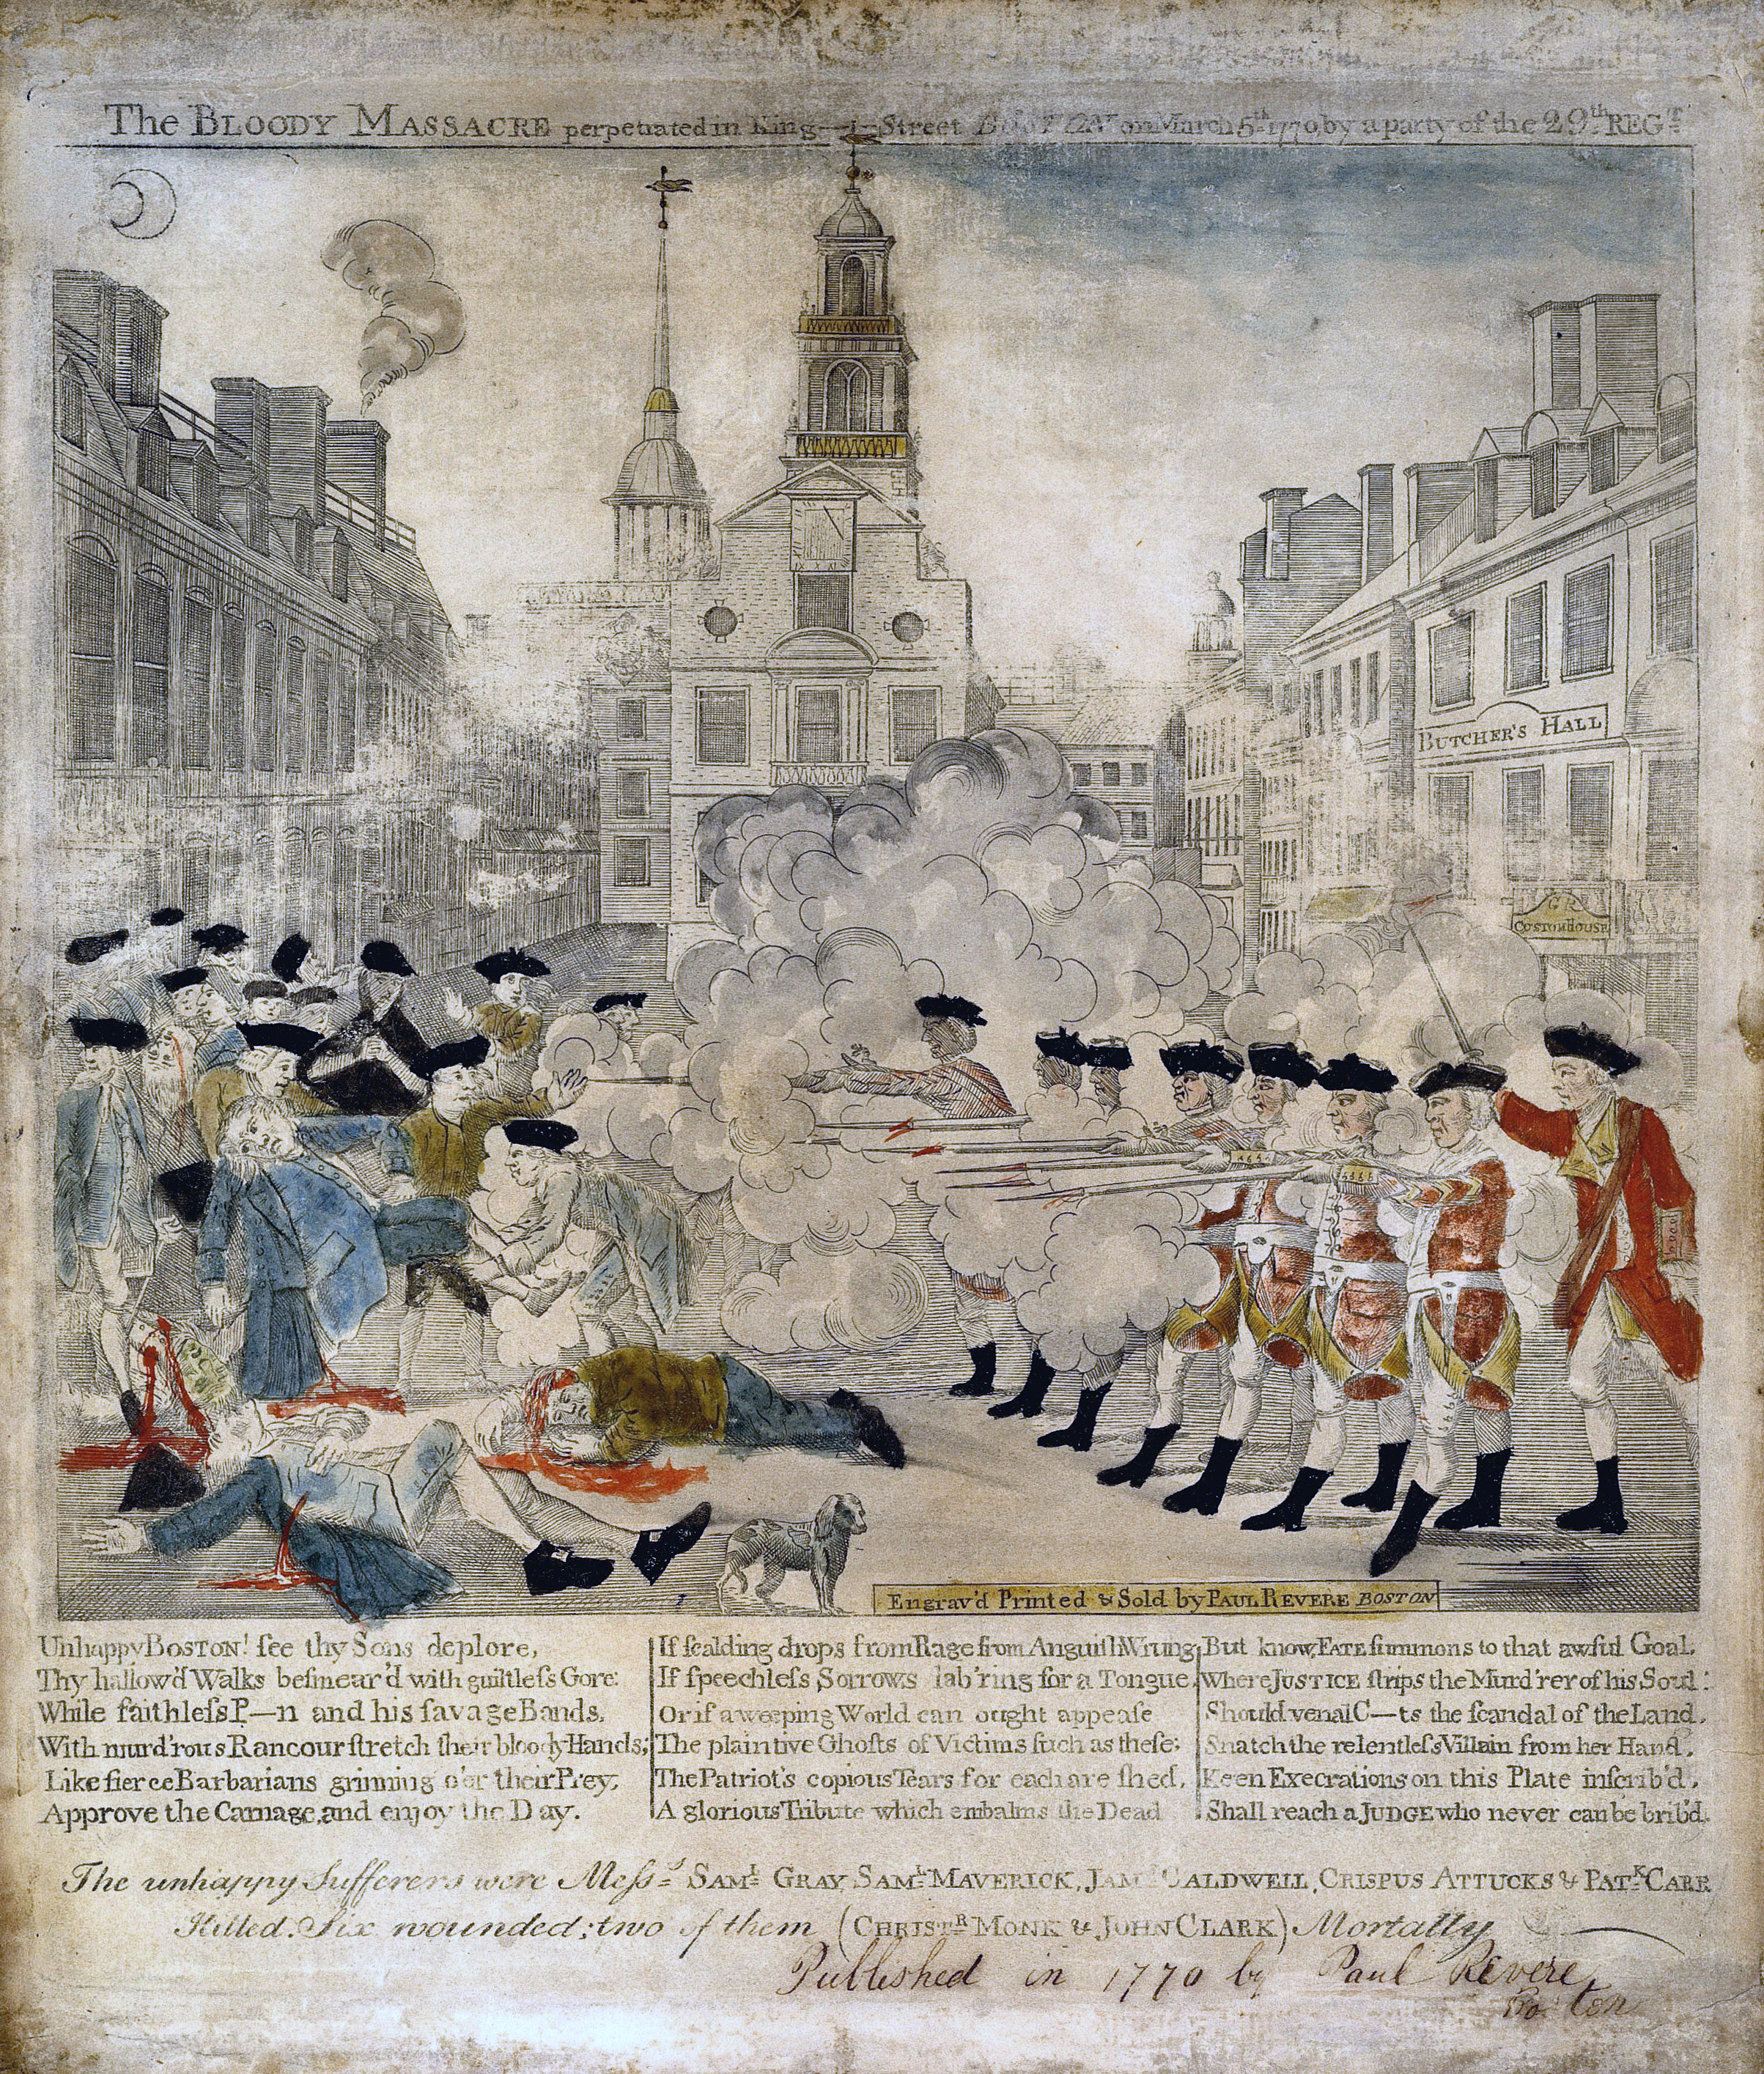 Who Is Responsible For The Boston Massacre